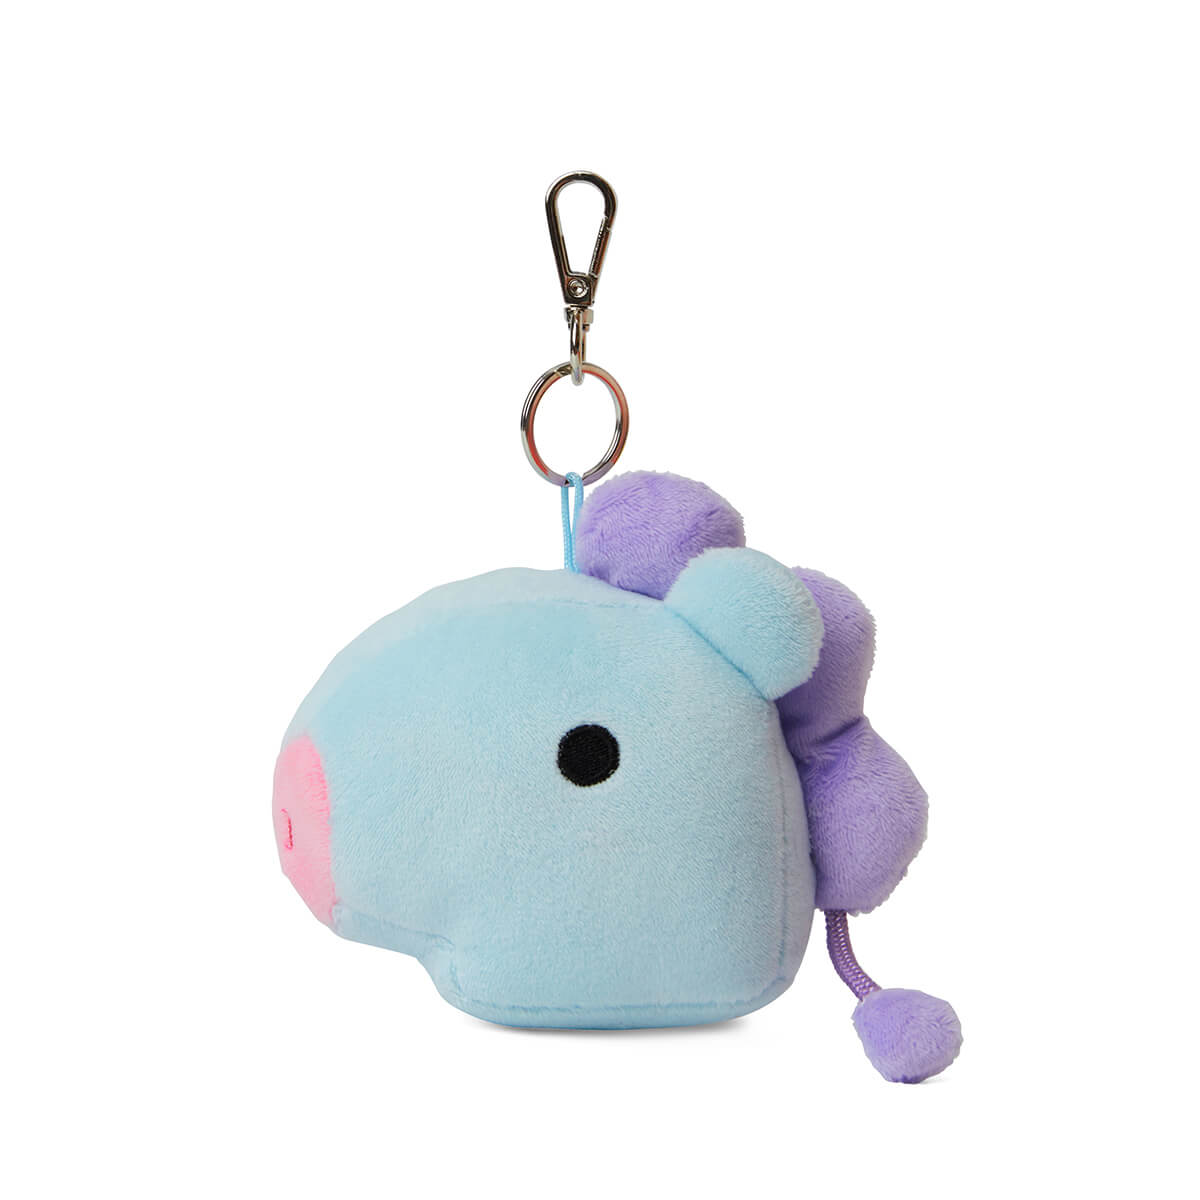 BT21 MANG BABY Lighting Bag Charm Doll